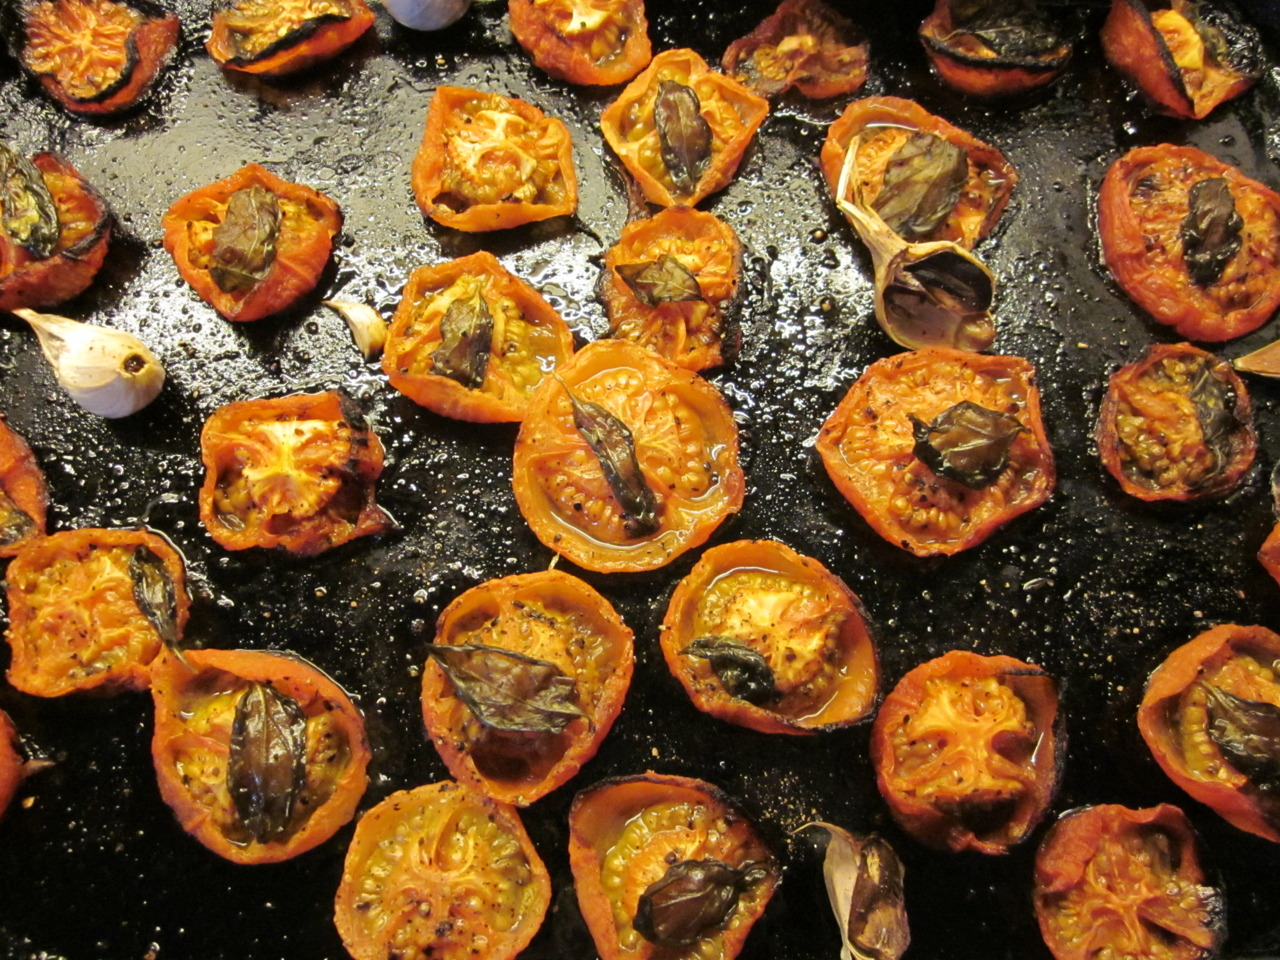 Roasted tomatoes with basil and garlic